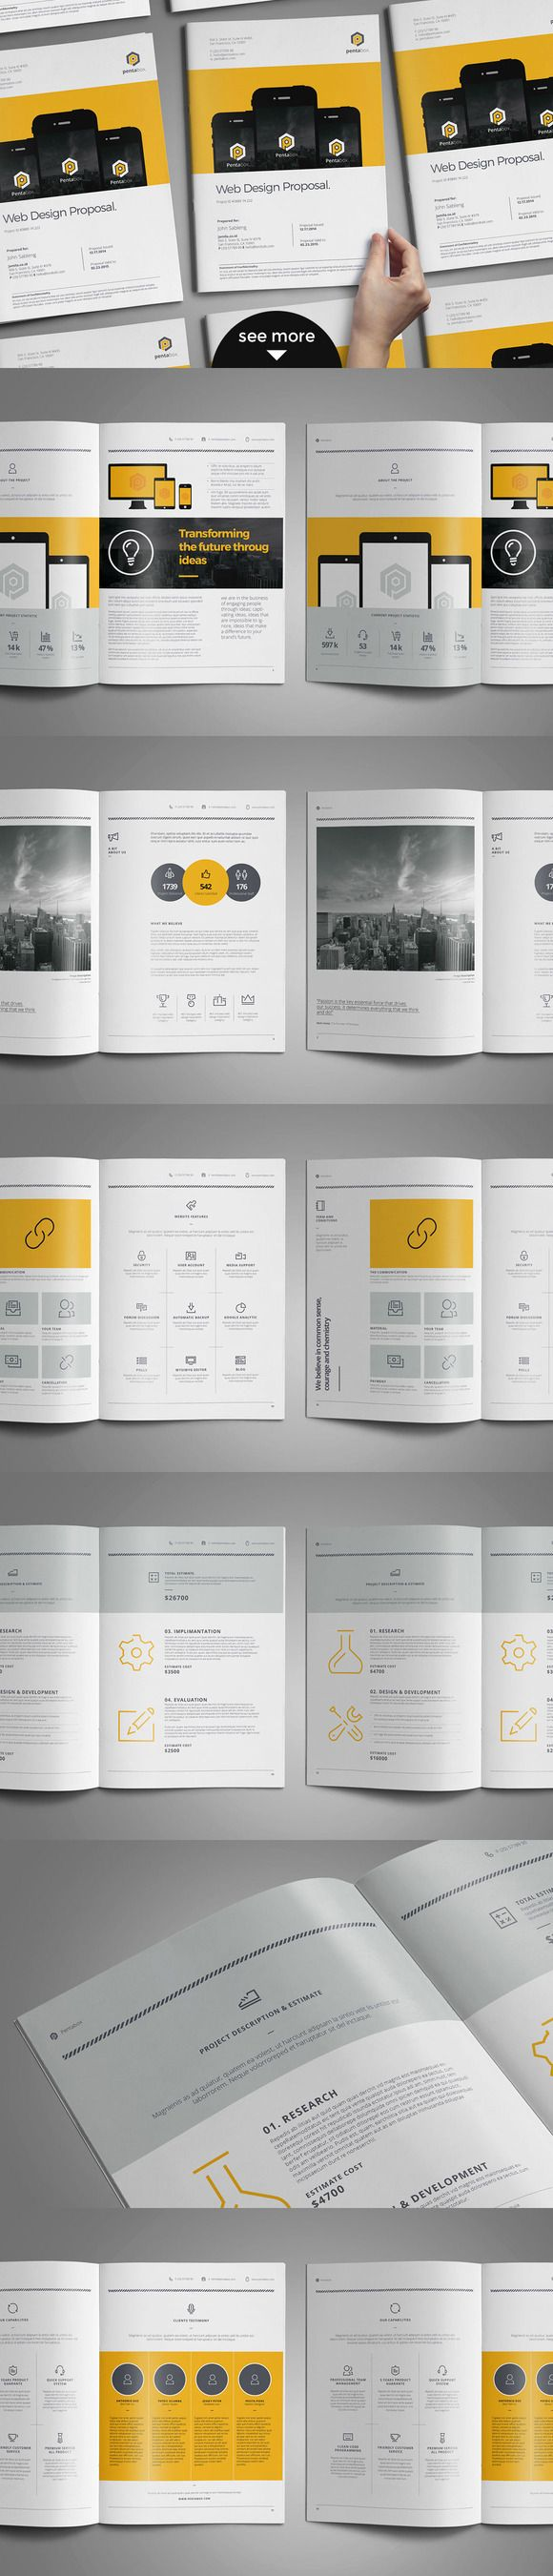 Free Download Web Design Proposal By Broluthfi On Creative Market